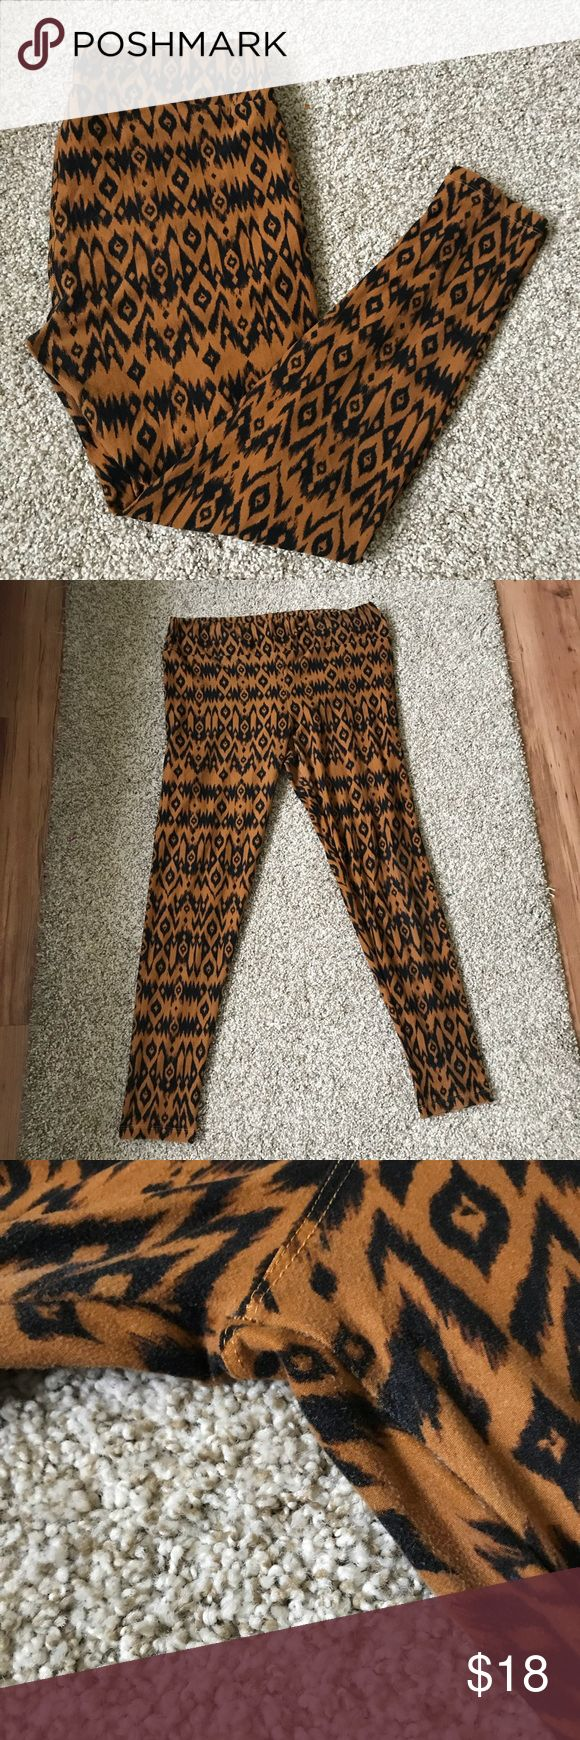 LuLaRoe Talk & Curvy Tribal Animal Print Leggings TC LuLaRoe cozy soft leggings in a brown and black Tribal Print, reminiscent of cheetah or animal print. Perfect neutral leggings! Tall and curvy size, washed per LuLaRoe instructions. Minor pilling on the leggings from wash and wear. ❣️ Reasonable offers are accepted! LuLaRoe Pants Leggings